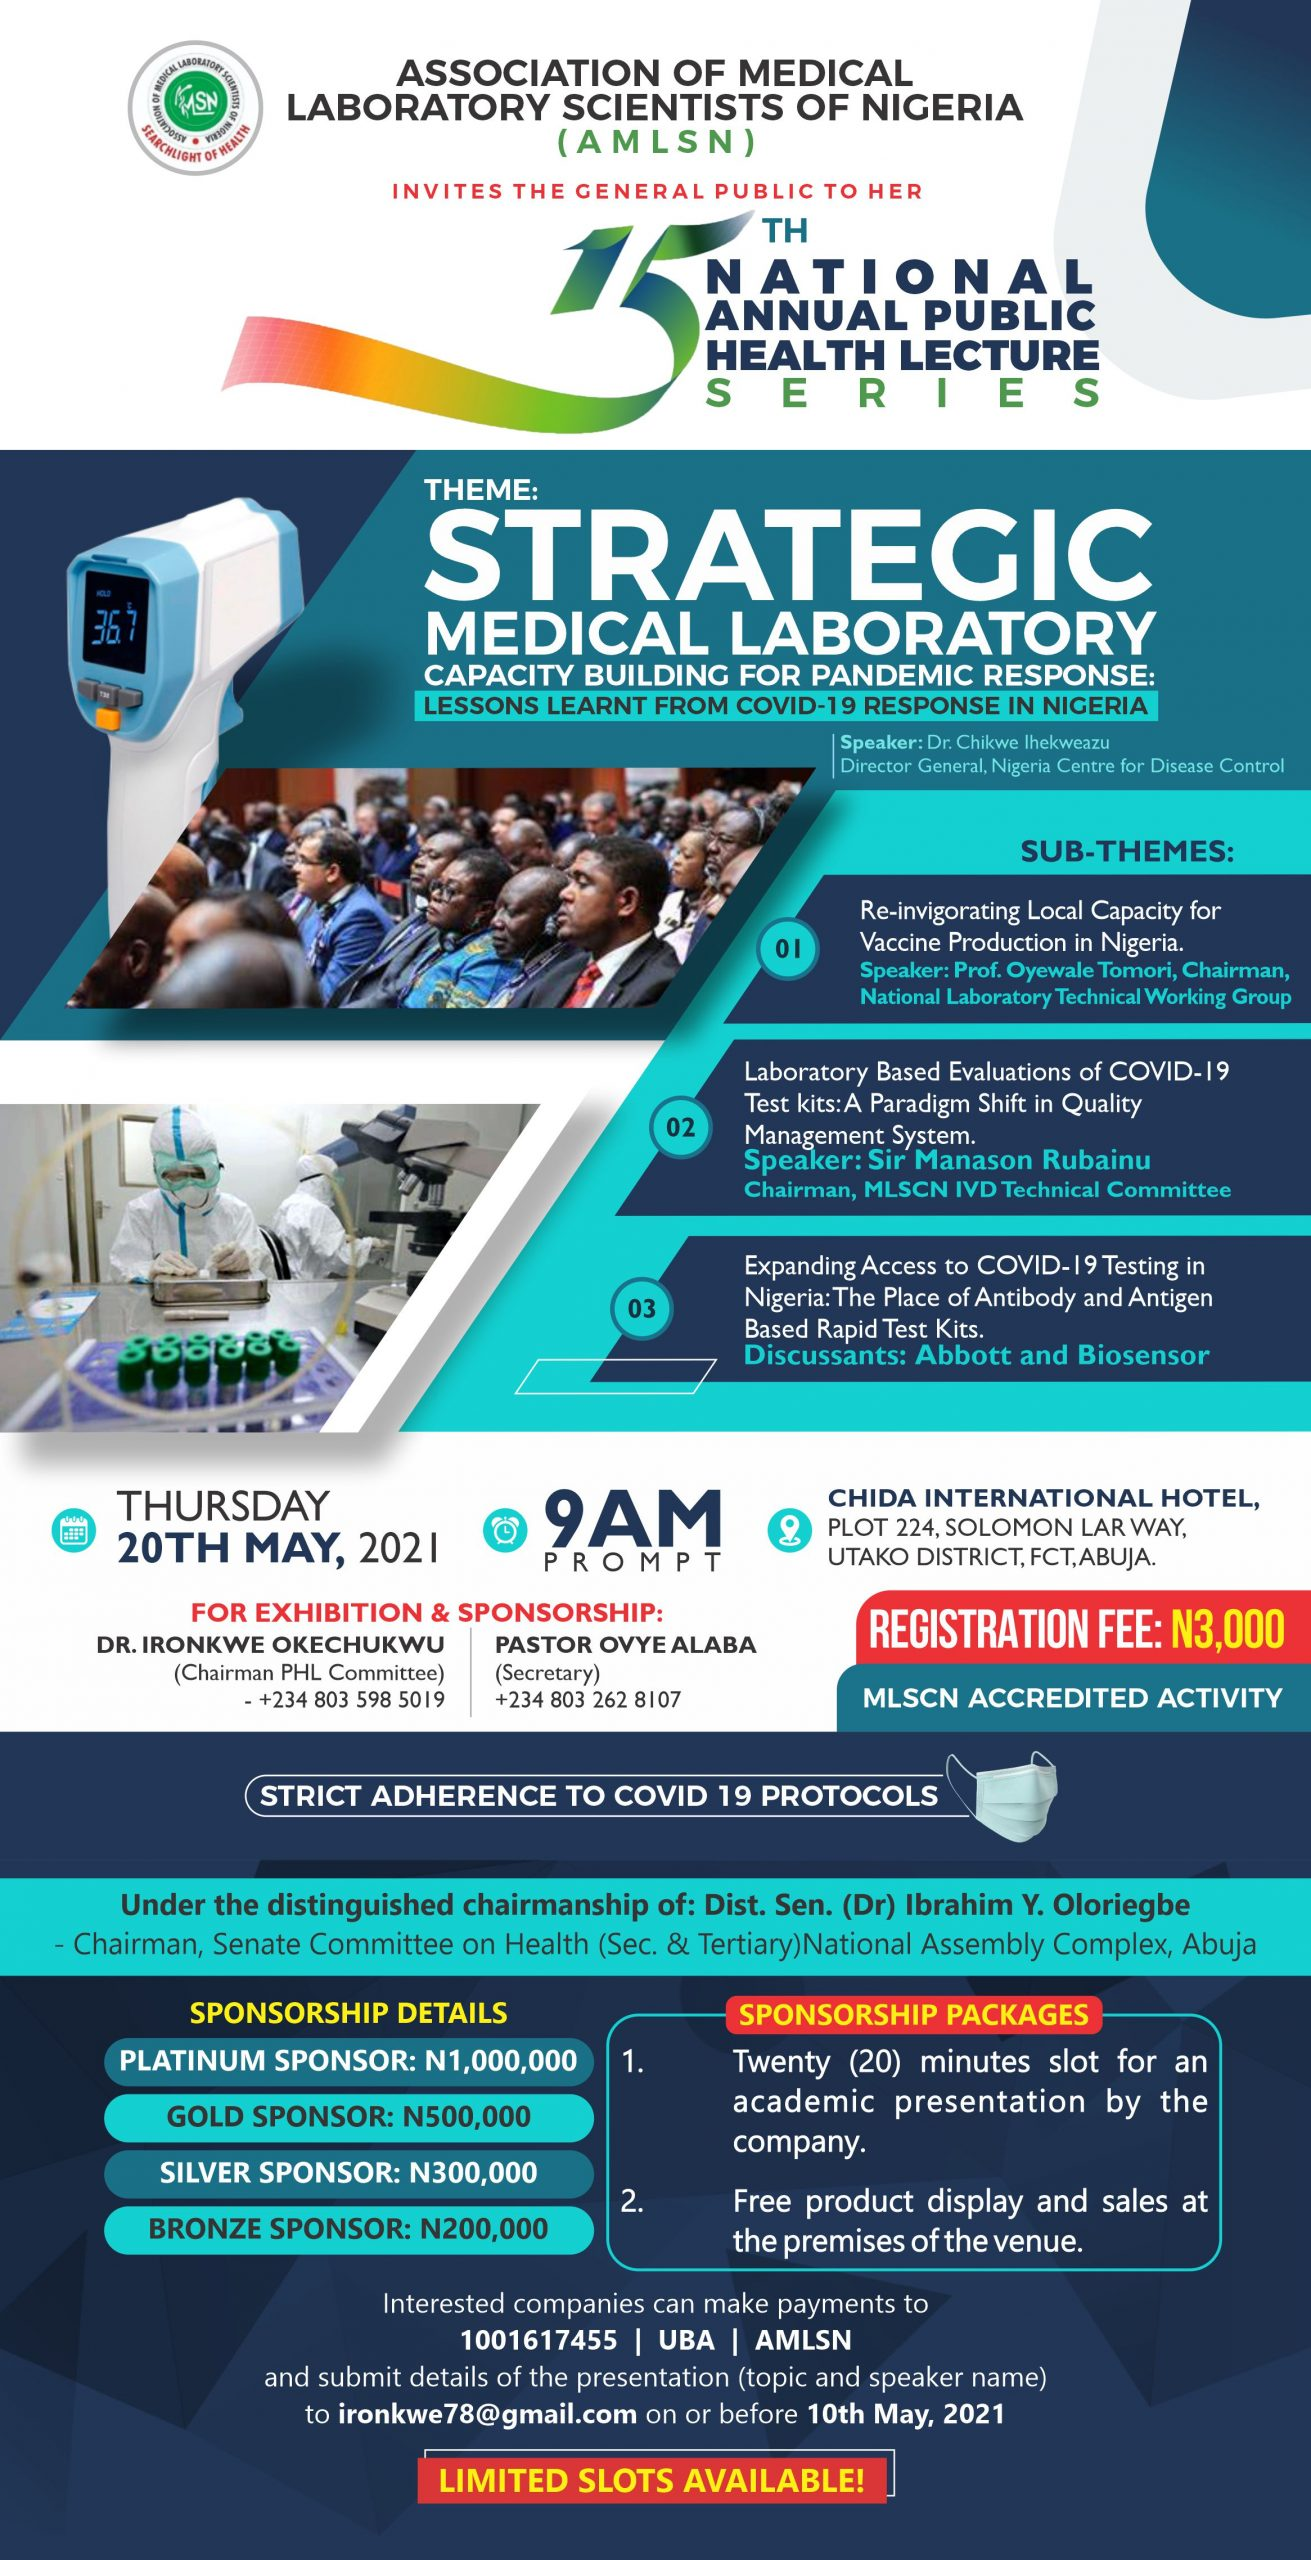 15TH NATIONAL ANNUAL PUBLIC HEALTH LECTURE SERIES/INVESTITURE